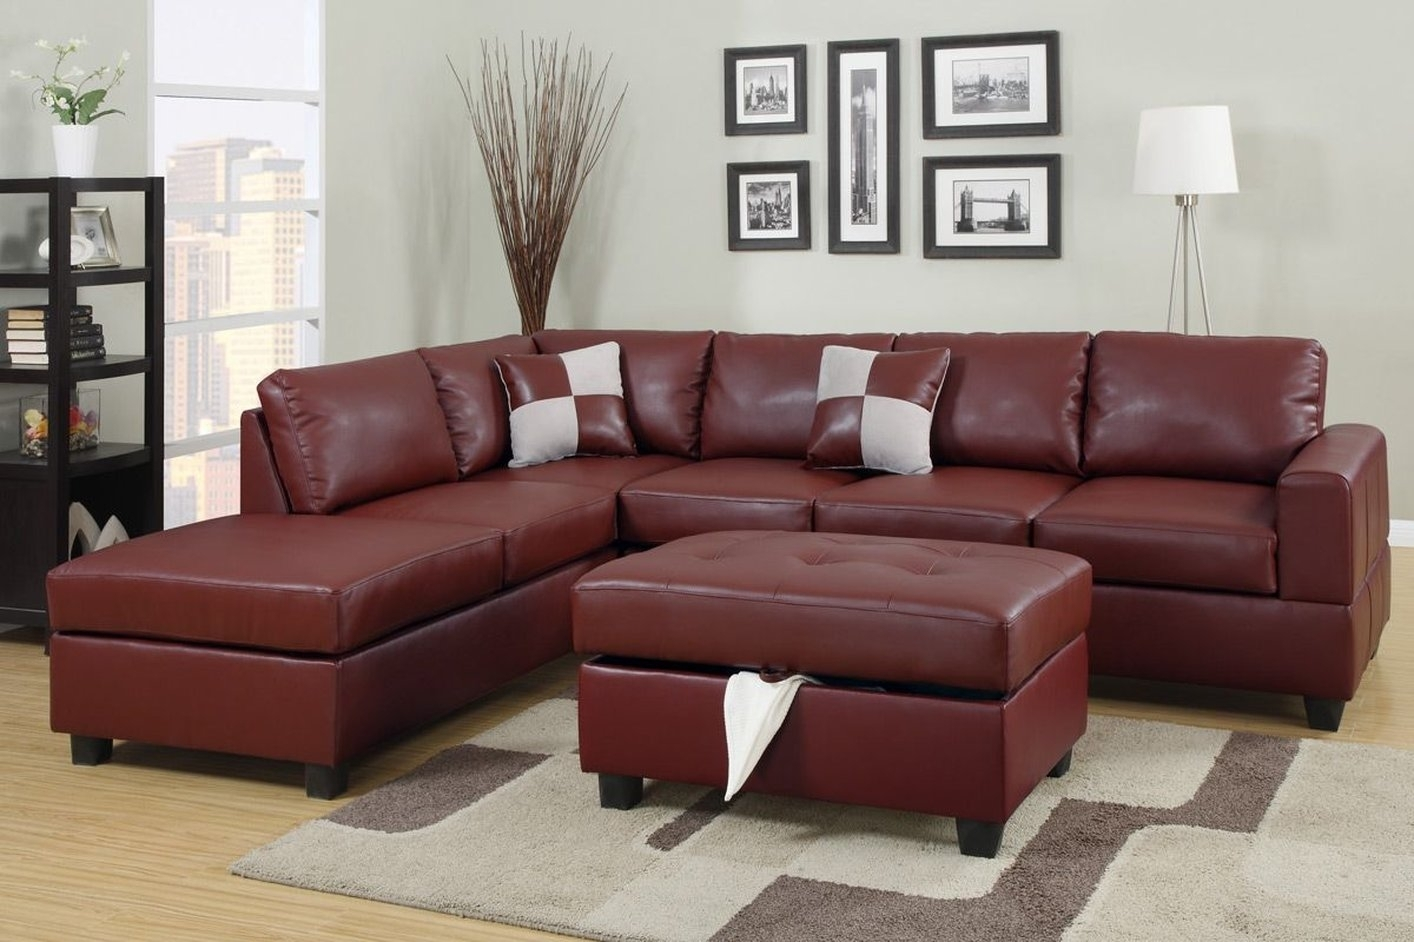 April Red Leather Sectional Sofa And Ottoman – Steal A Sofa With Red Sectional Sofas With Ottoman (View 6 of 15)